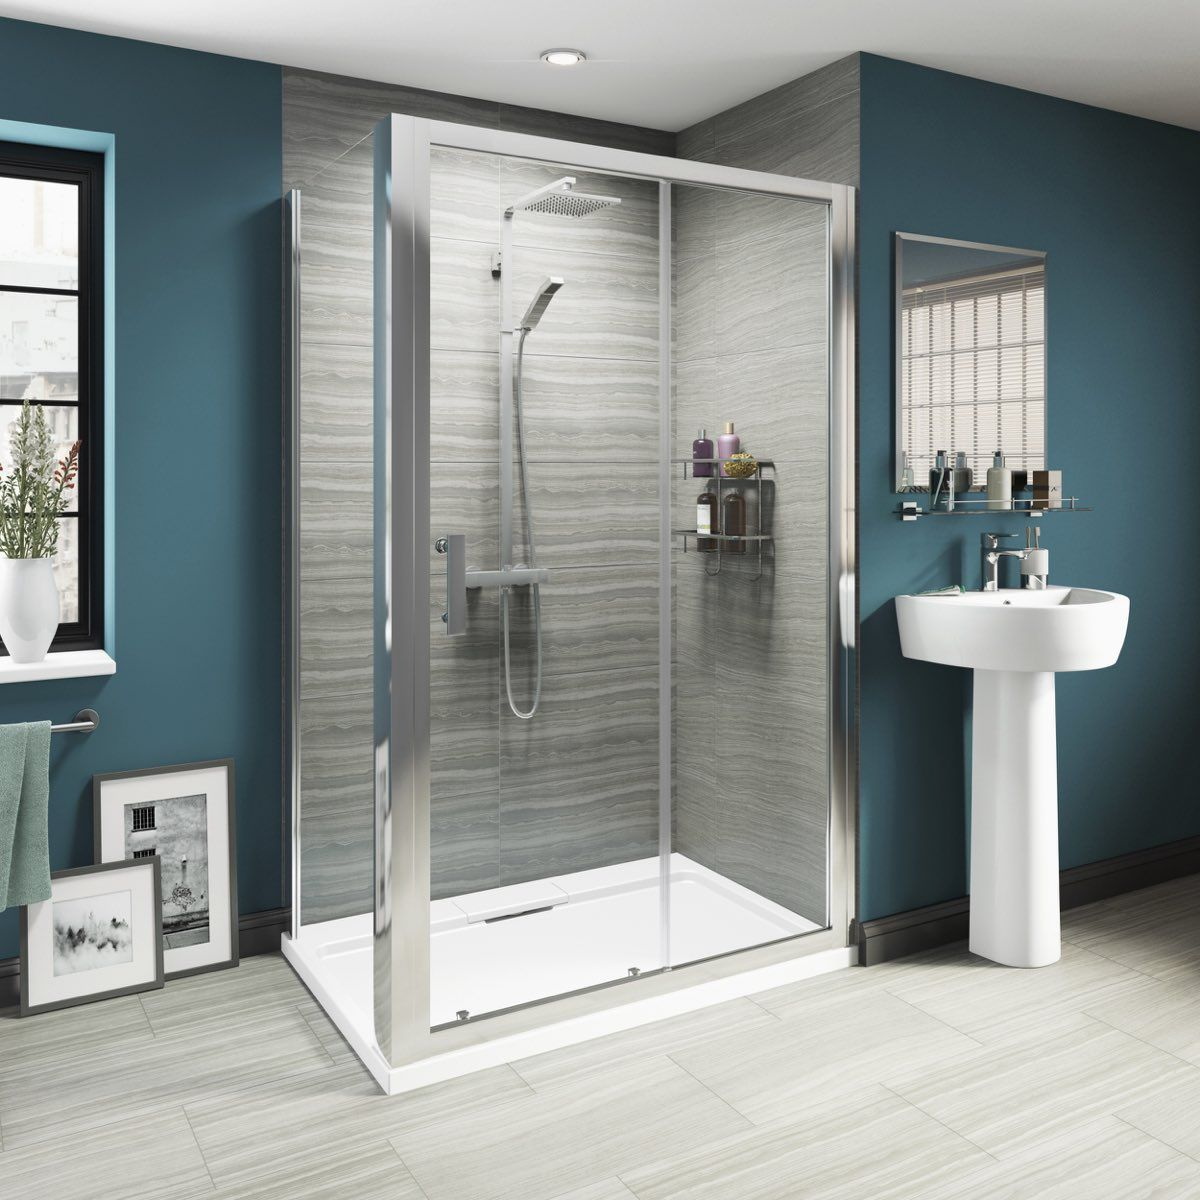 Luxury 8mm sliding door shower enclosure offer pack | Shower ...